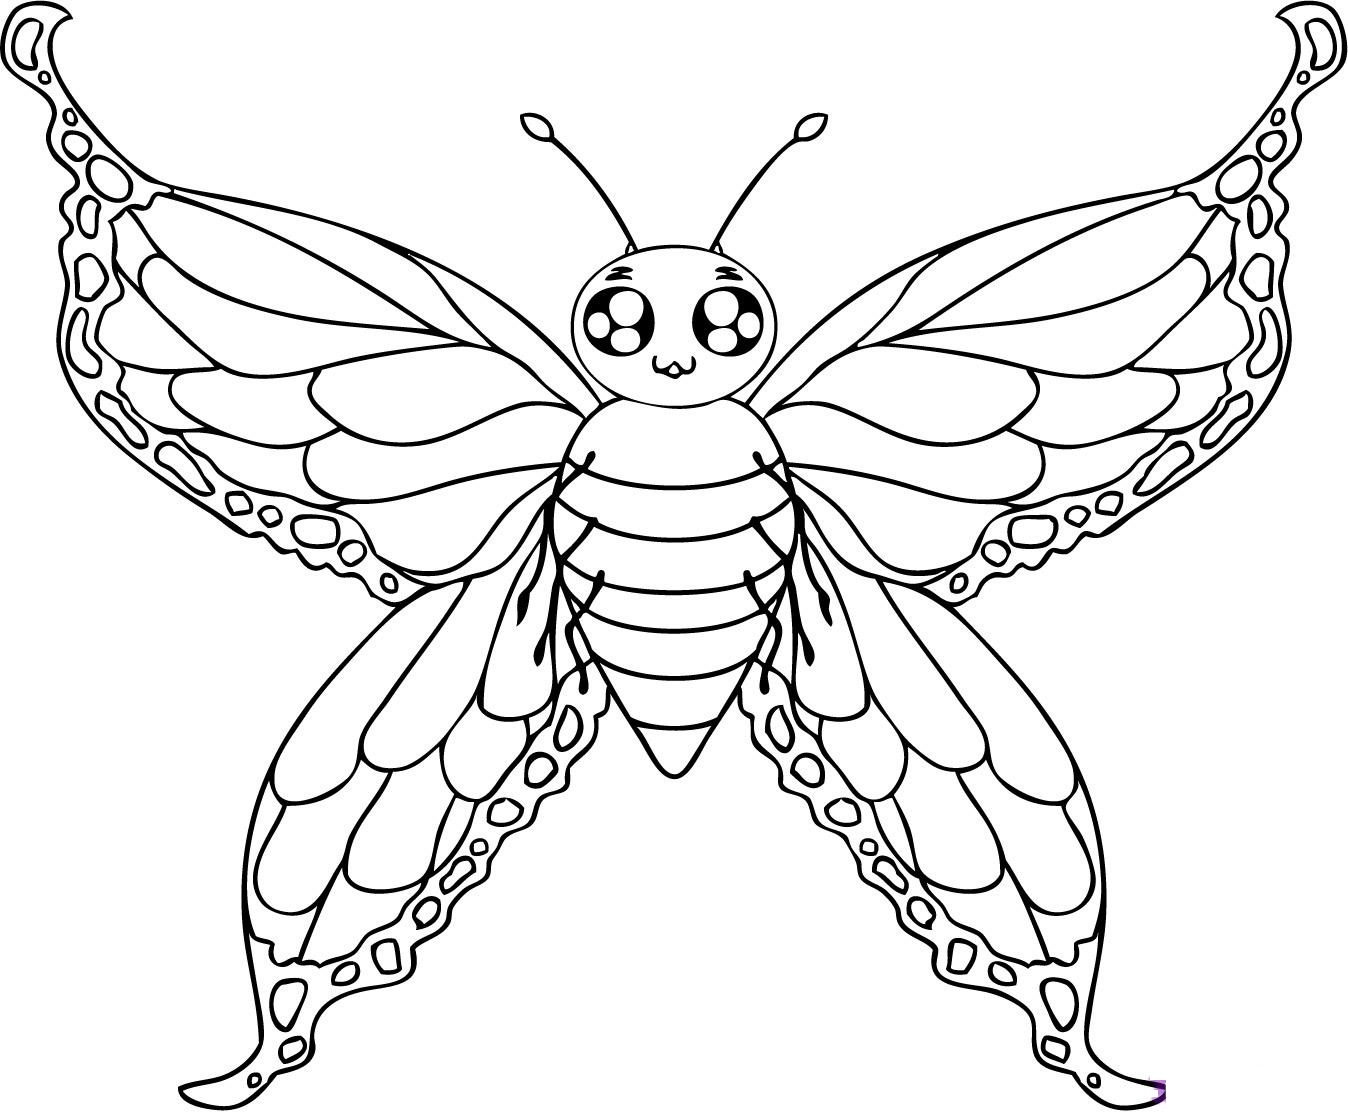 line drawing coloring pages - photo#25